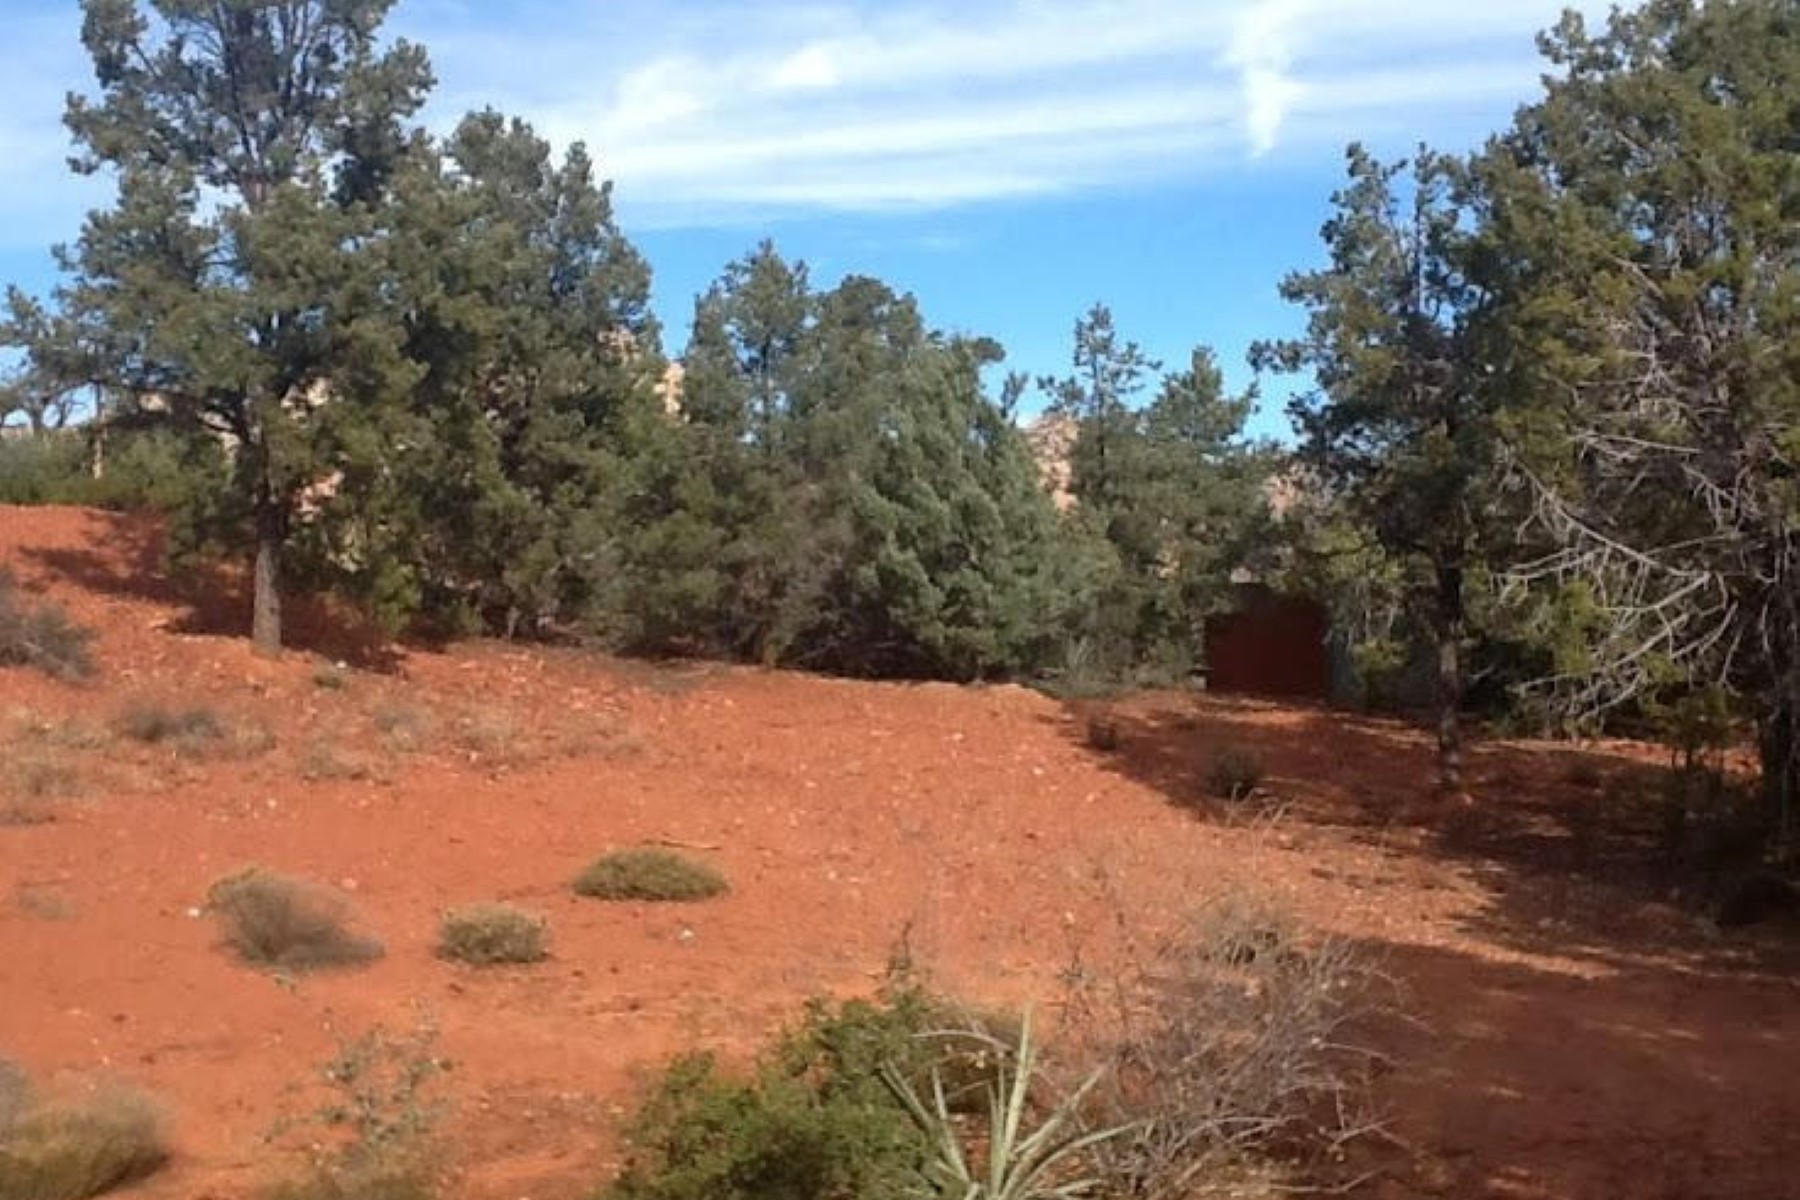 Land for Sale at Centrally located in West Sedona on 0.19ac cornet lot. 2390 Roadrunner Rd Sedona, Arizona 86336 United States